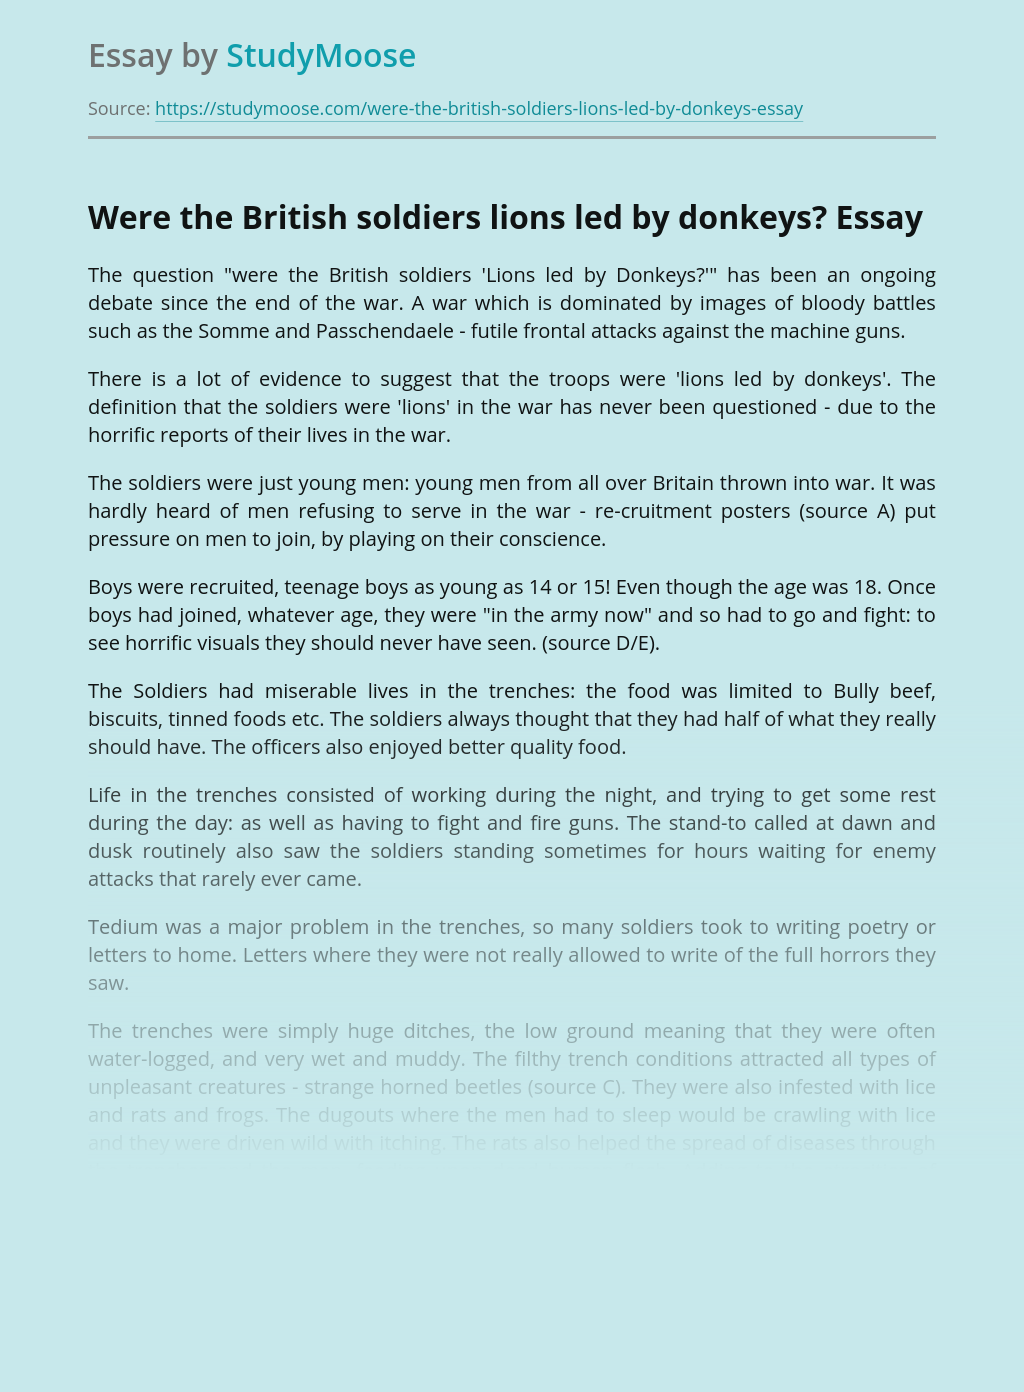 Were the British soldiers lions led by donkeys?